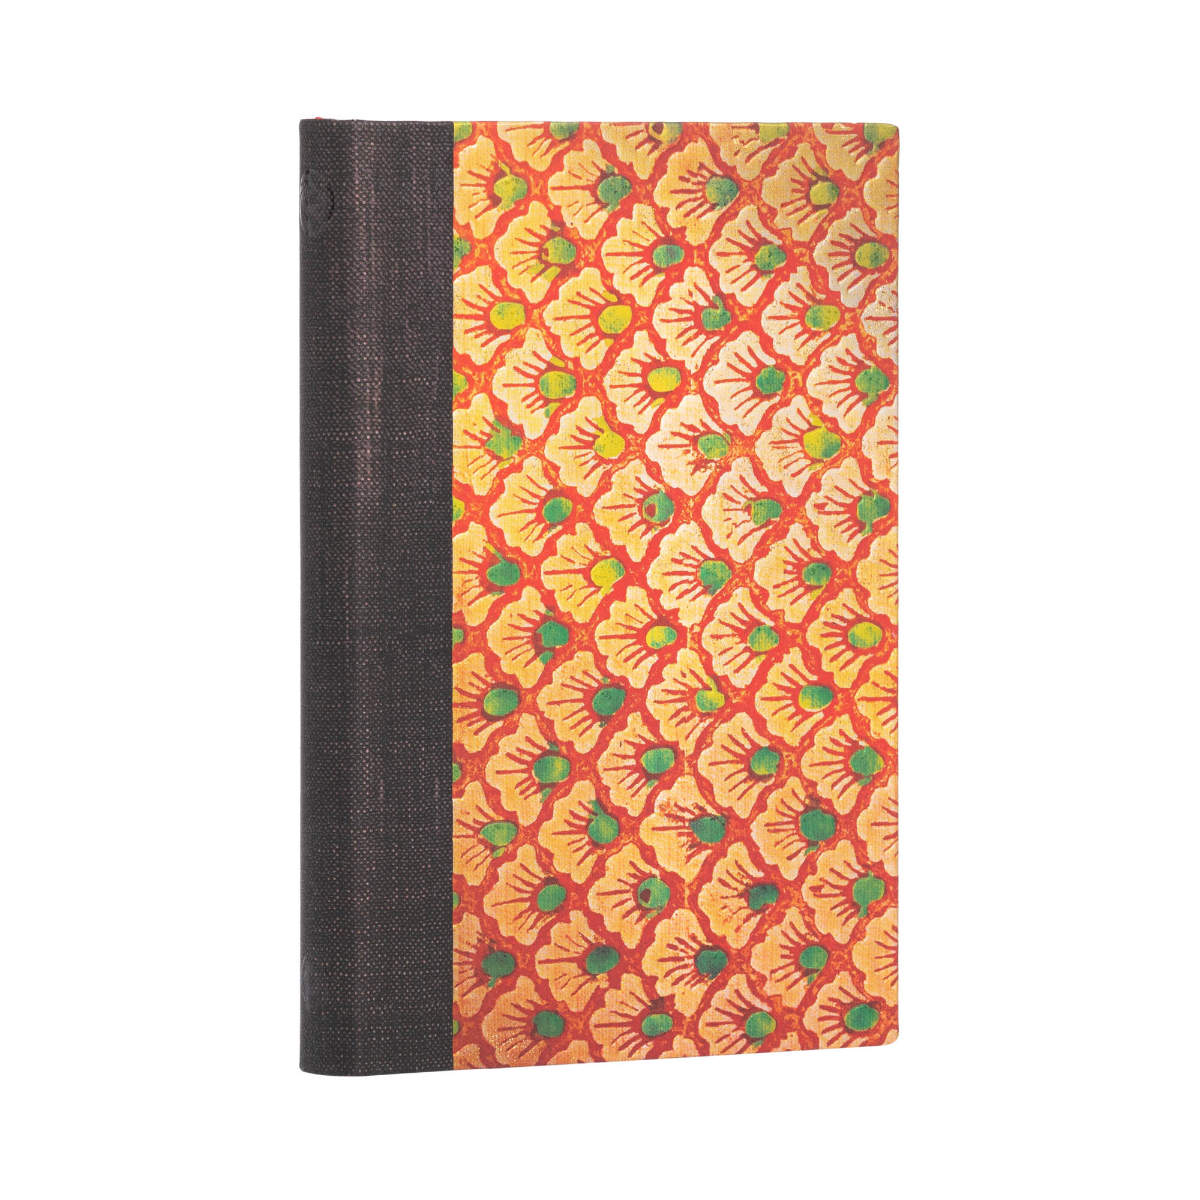 Paperblanks Virginia Woolf The Waves Vol 3 Mini Journal